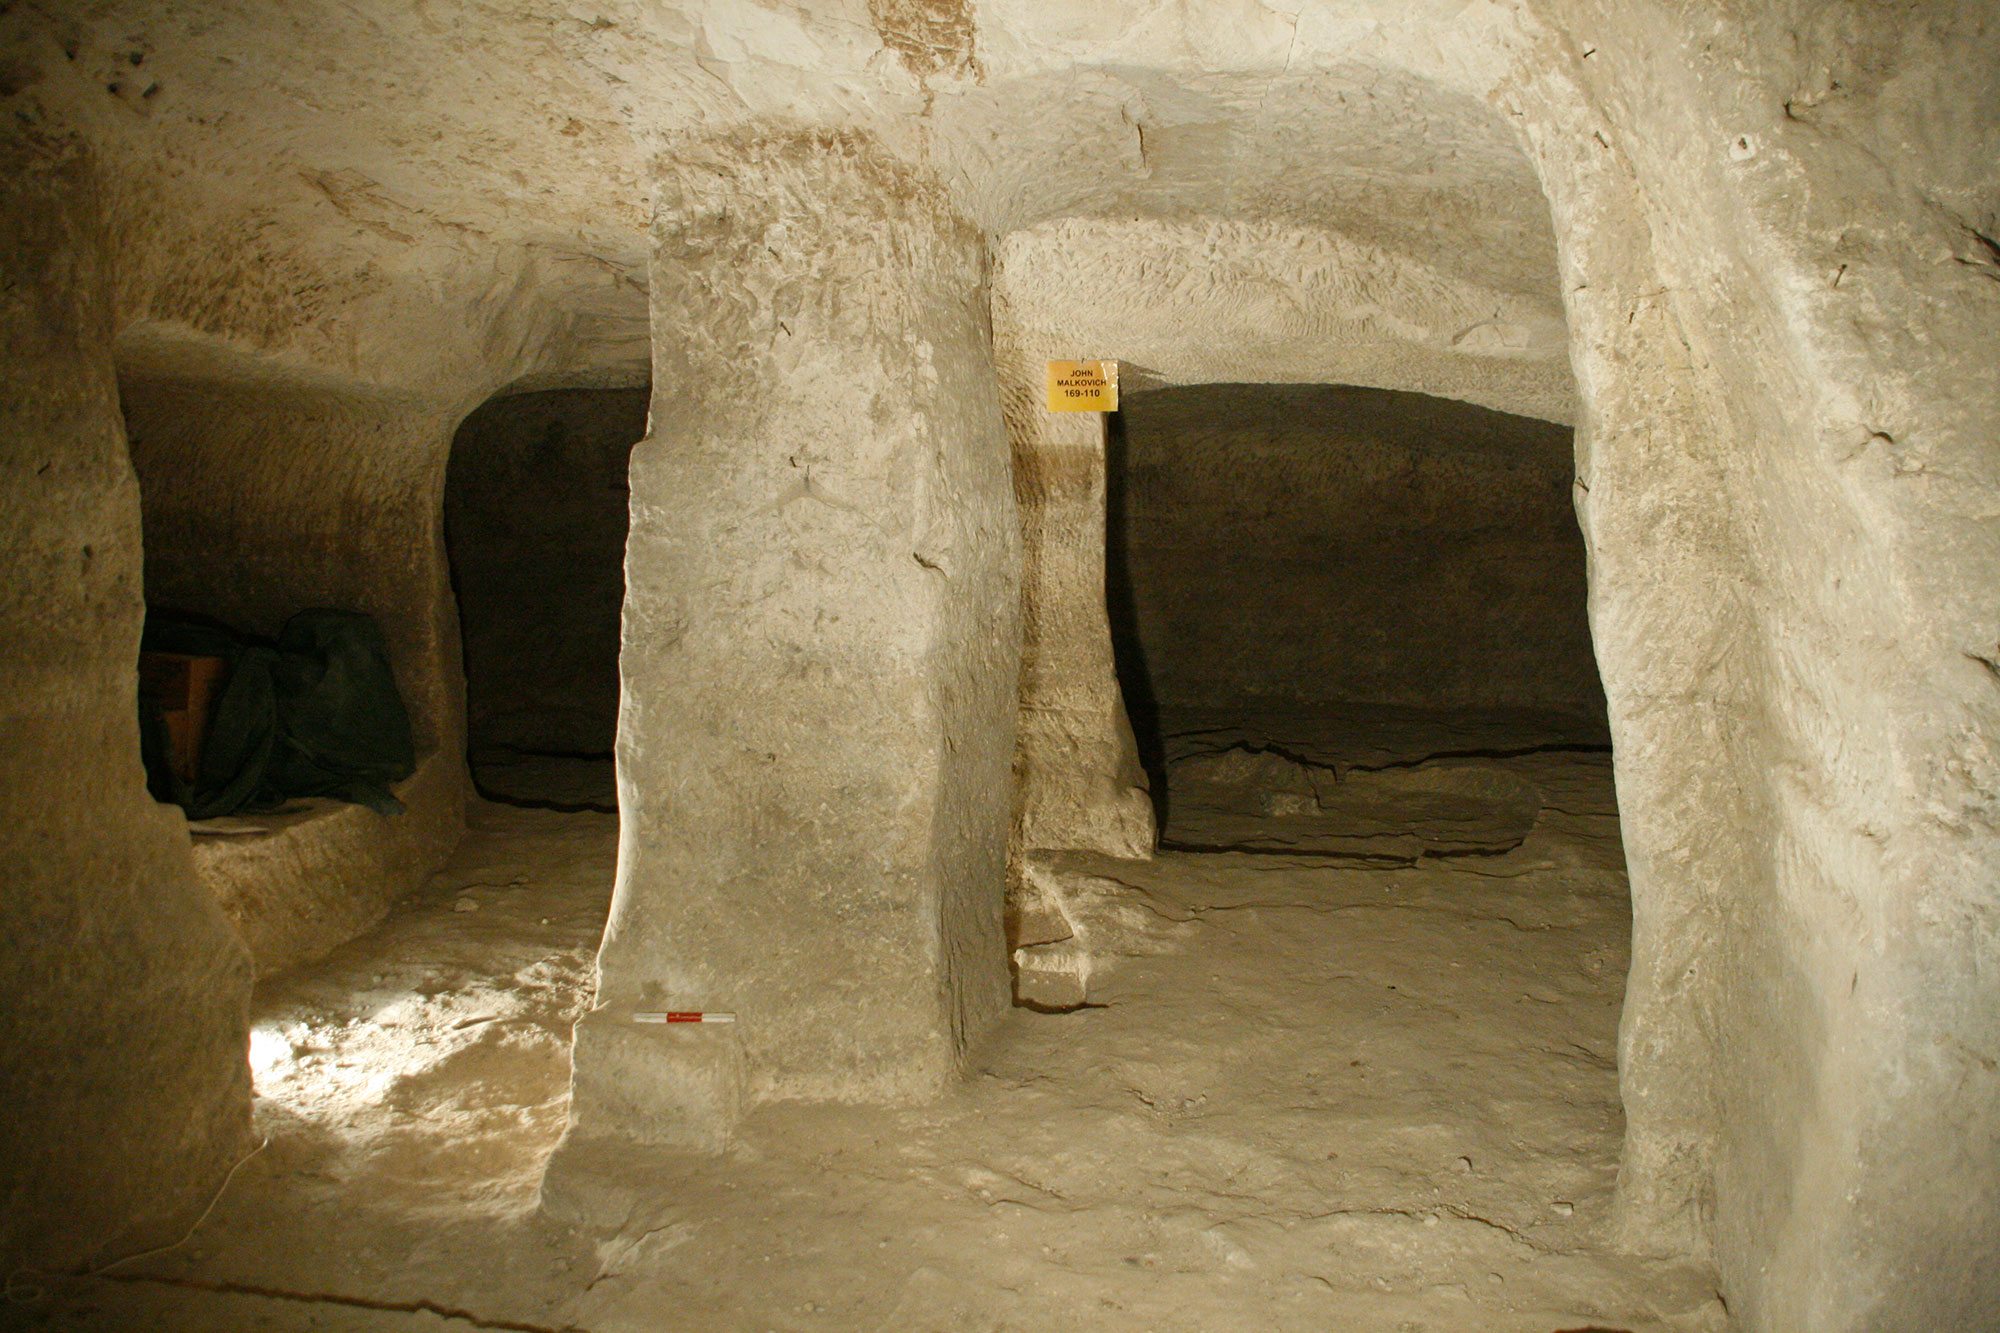 Subterranean chambers at Hellenistic Maresha